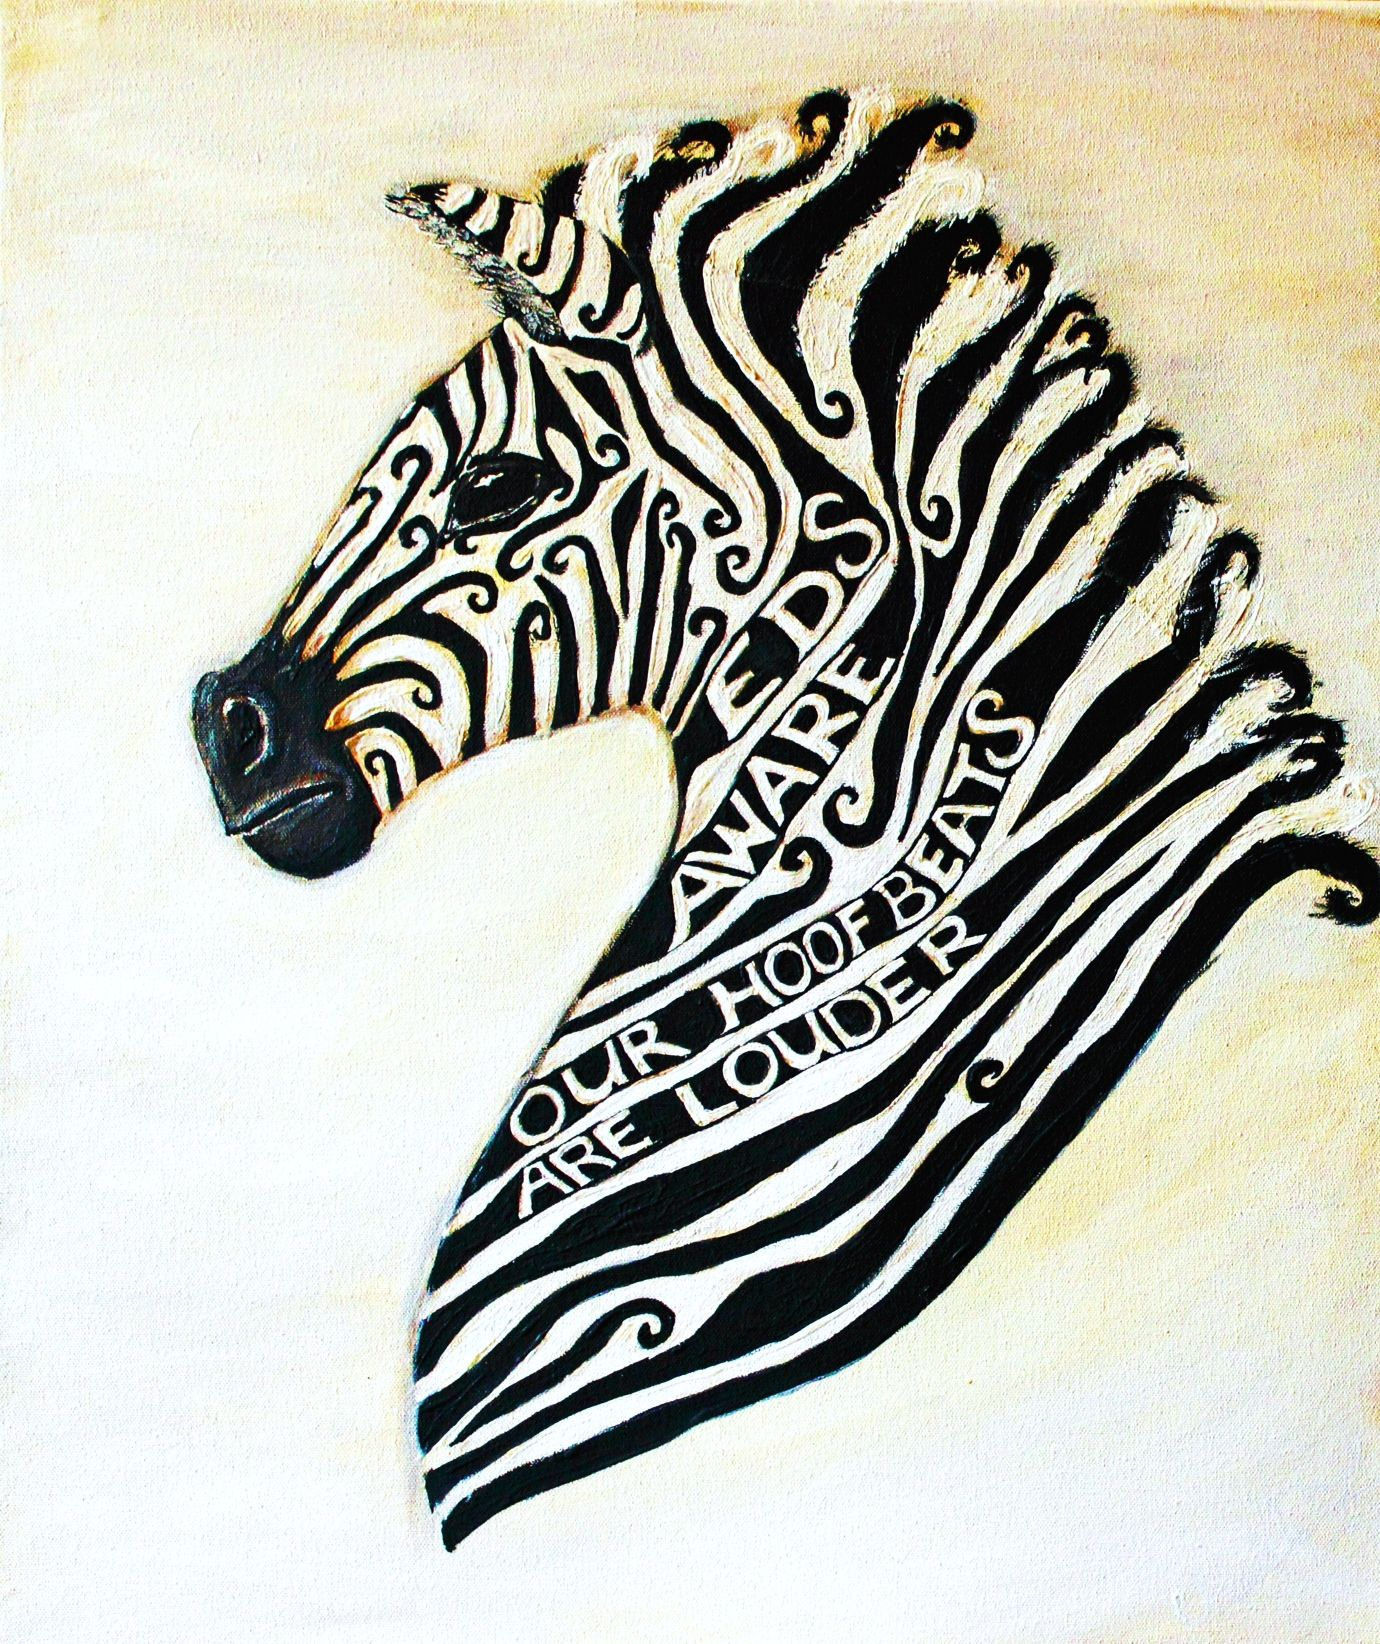 """The Ehlers Danlos Syndrome Zebra - Words """"EDS AWARE Our Hoof Beats Are Louder"""" By Artist Cherish Fletcher Wellness Trees Project  - Original Art and books For ill Children @projecttrees"""